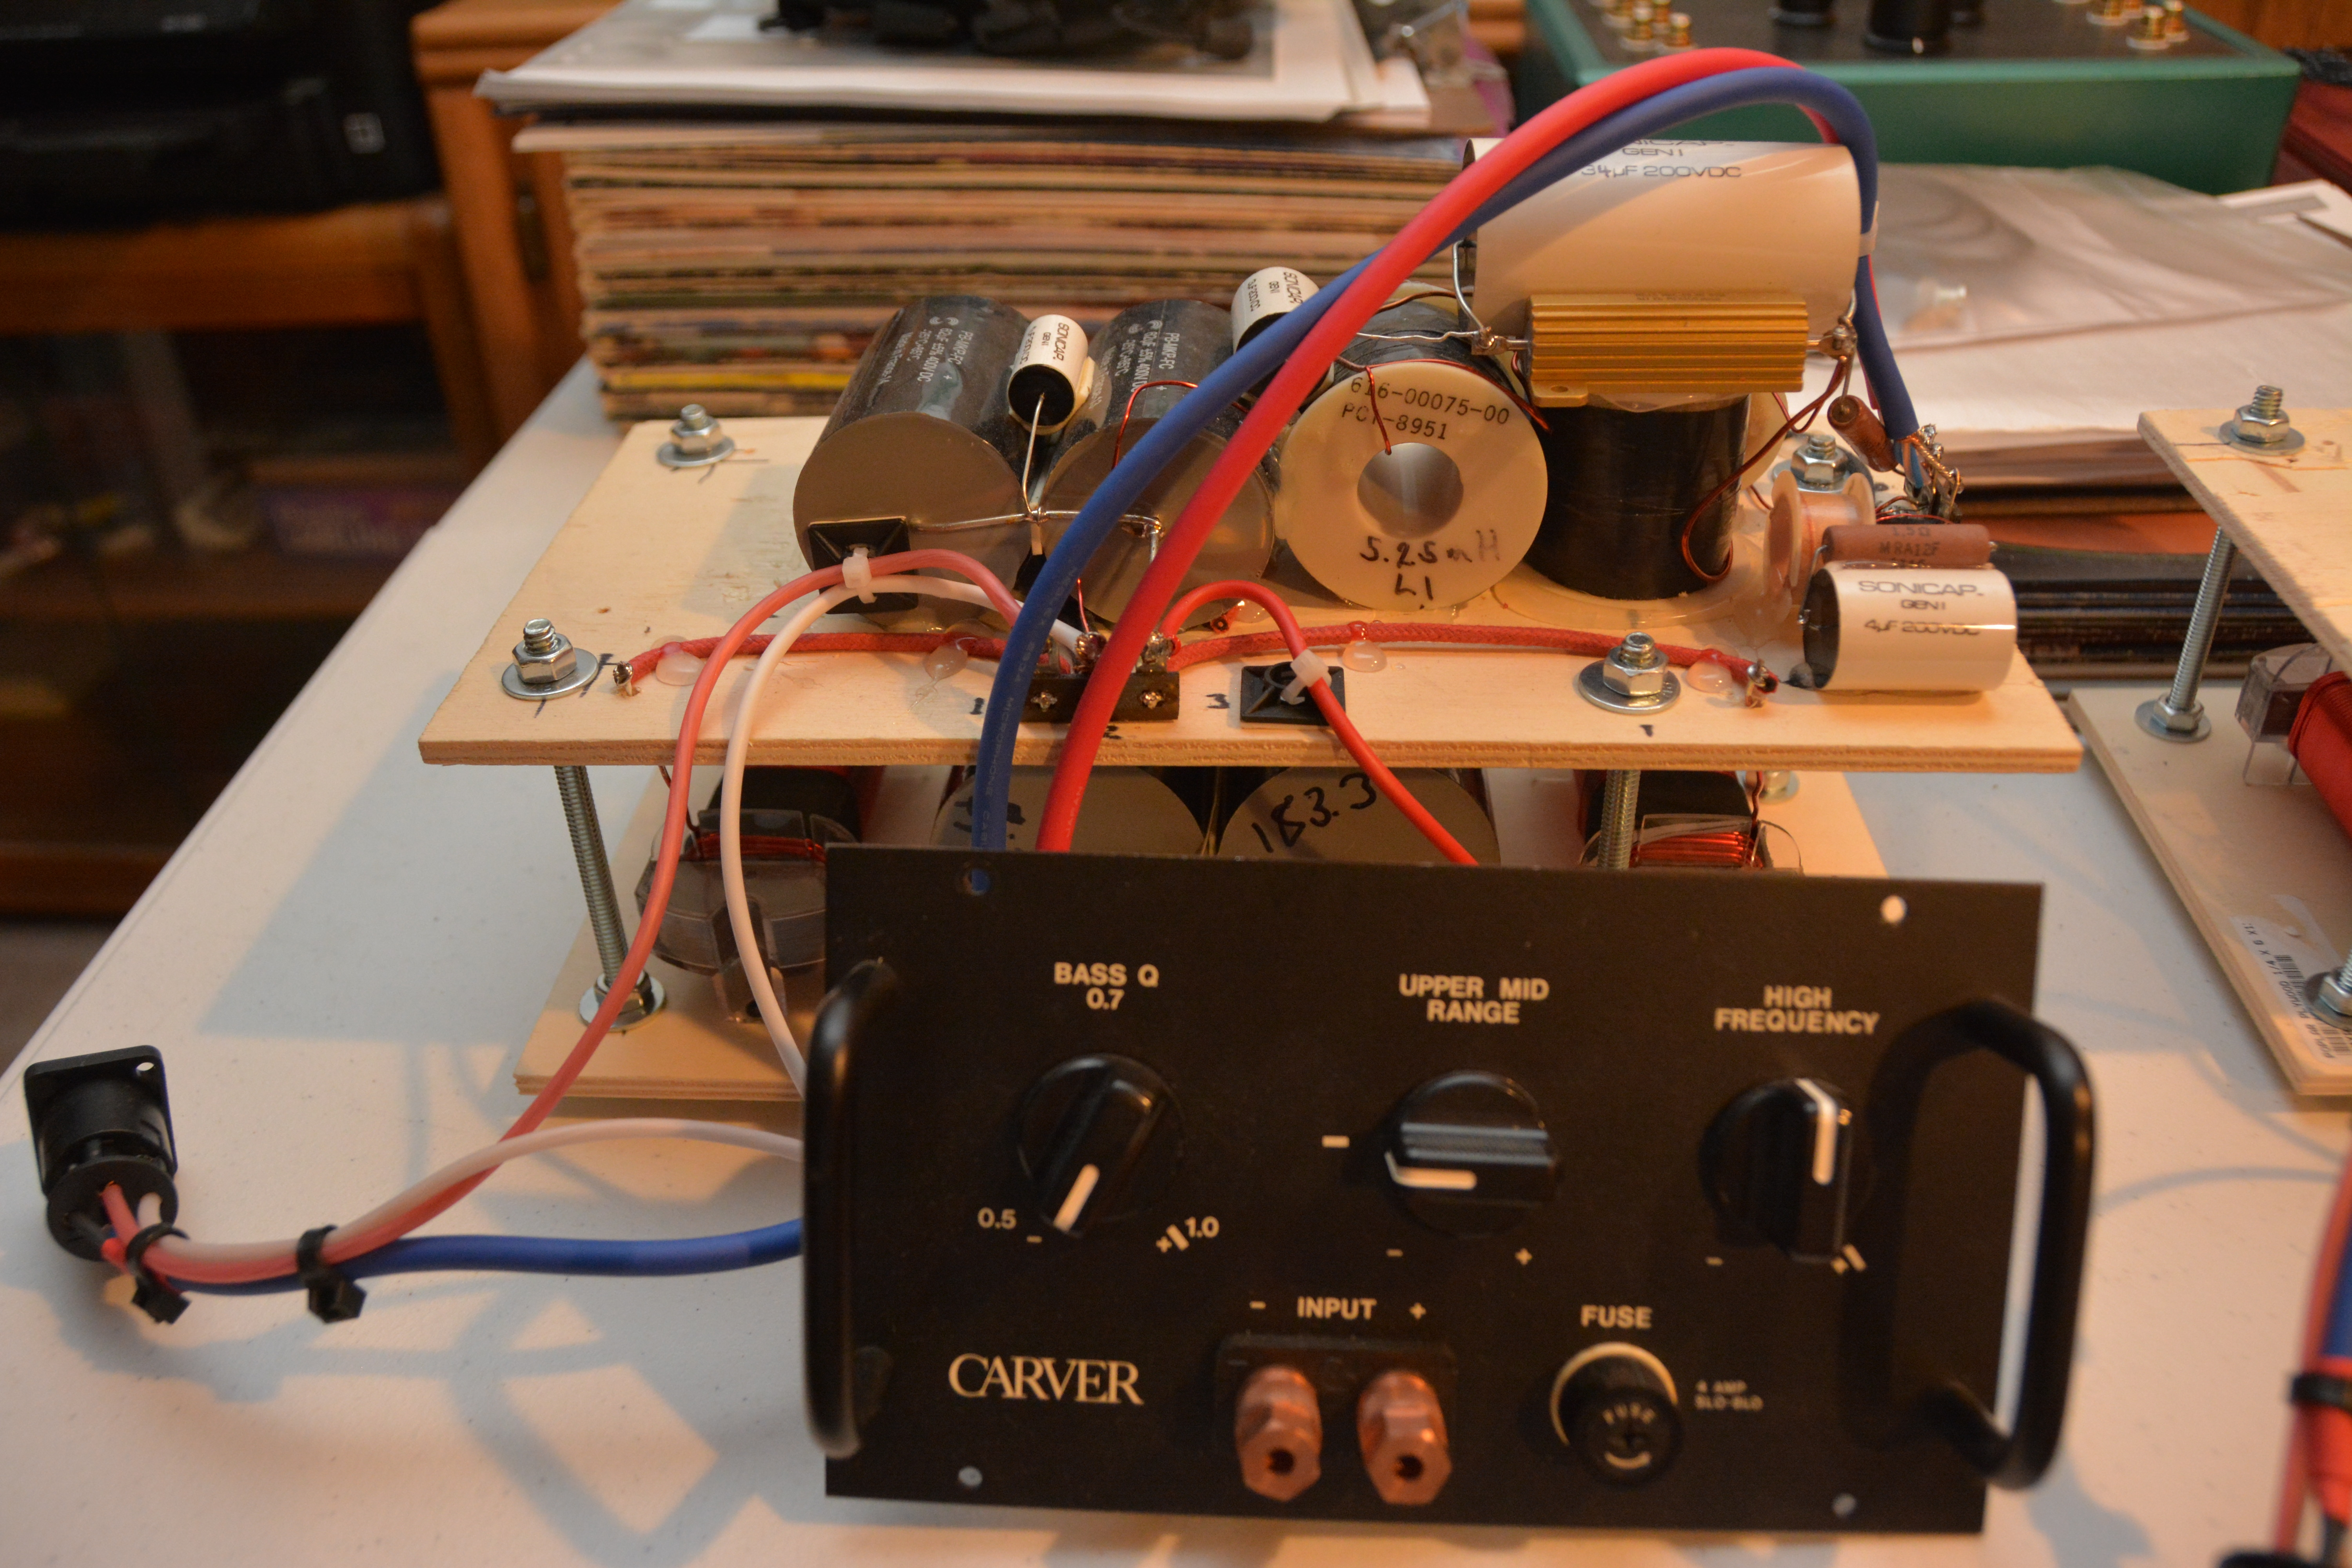 Wiring Diagram Carver Speakers Great Installation Of 4 Ohm Sub Per Silver Amazing 3 10 Woofers And A Ribbon Rh Forum Polkaudio Com Speaker Parallel